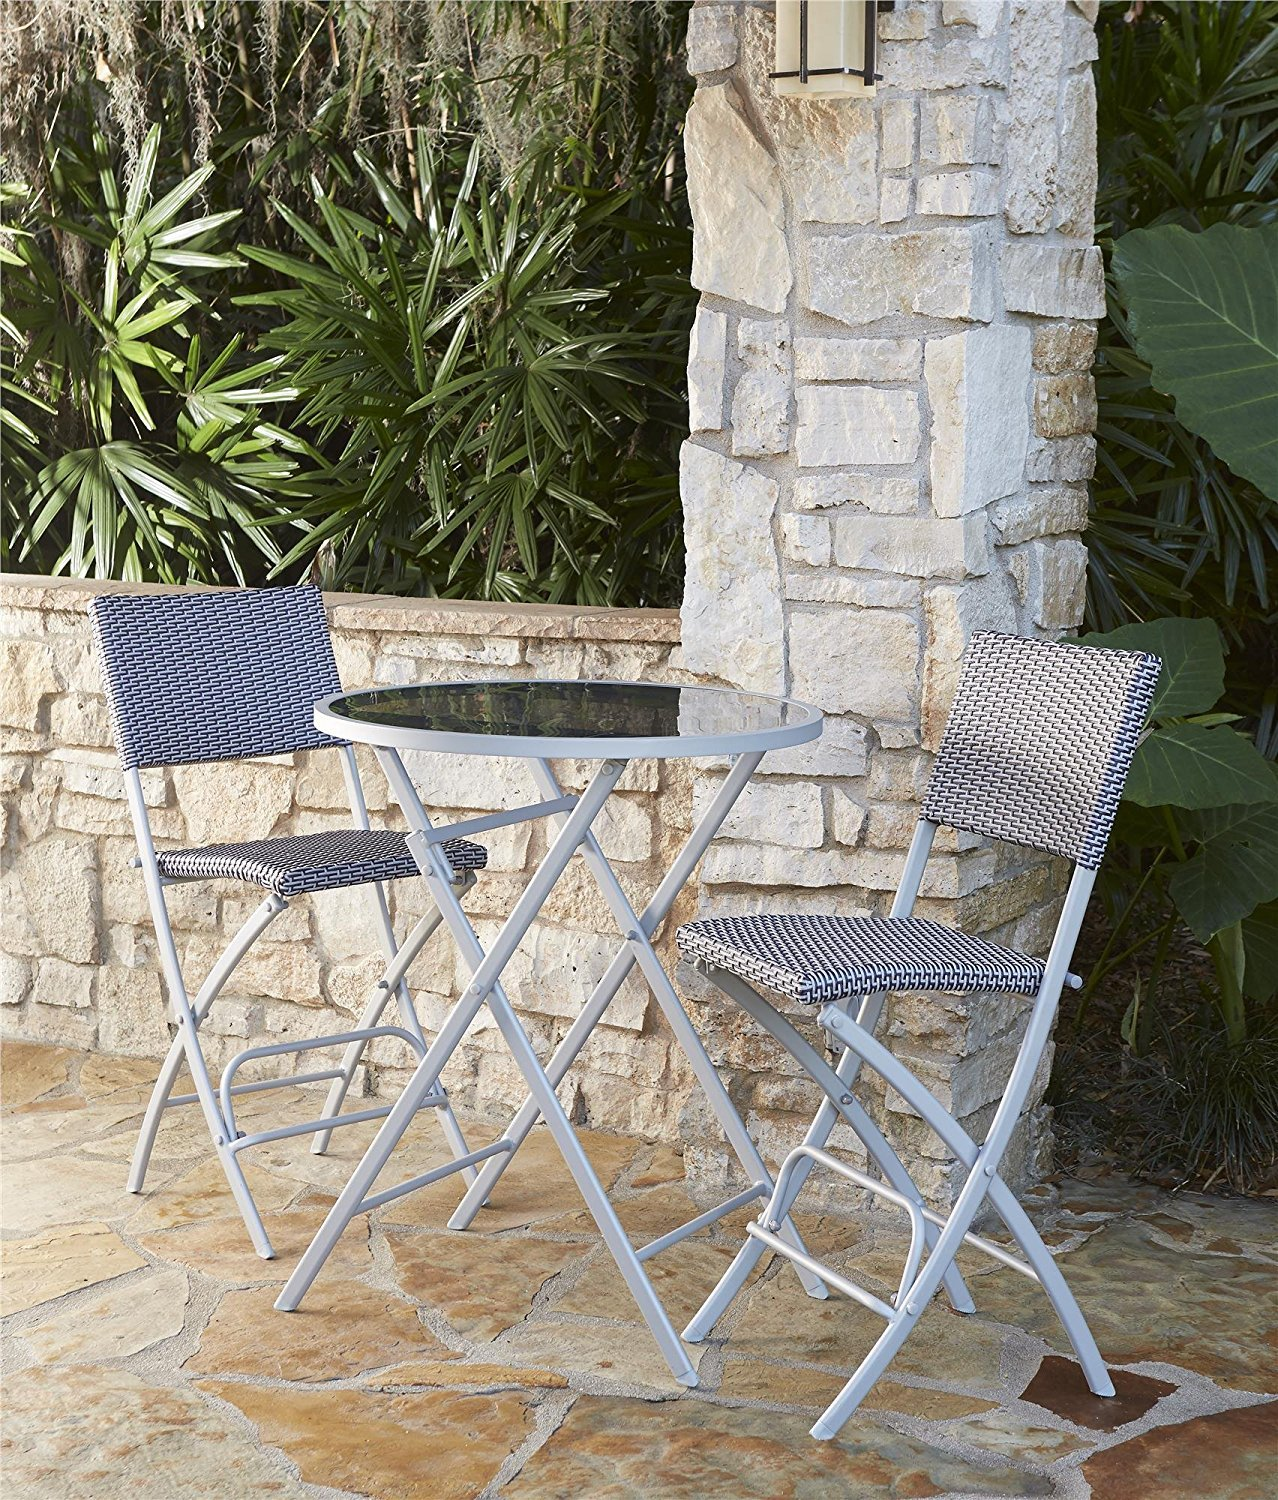 Cosco Outdoor High Top Bistro Set, Folding, 3 Piece, Steel Frame with Navy and Gray Wicker 87632BGBE